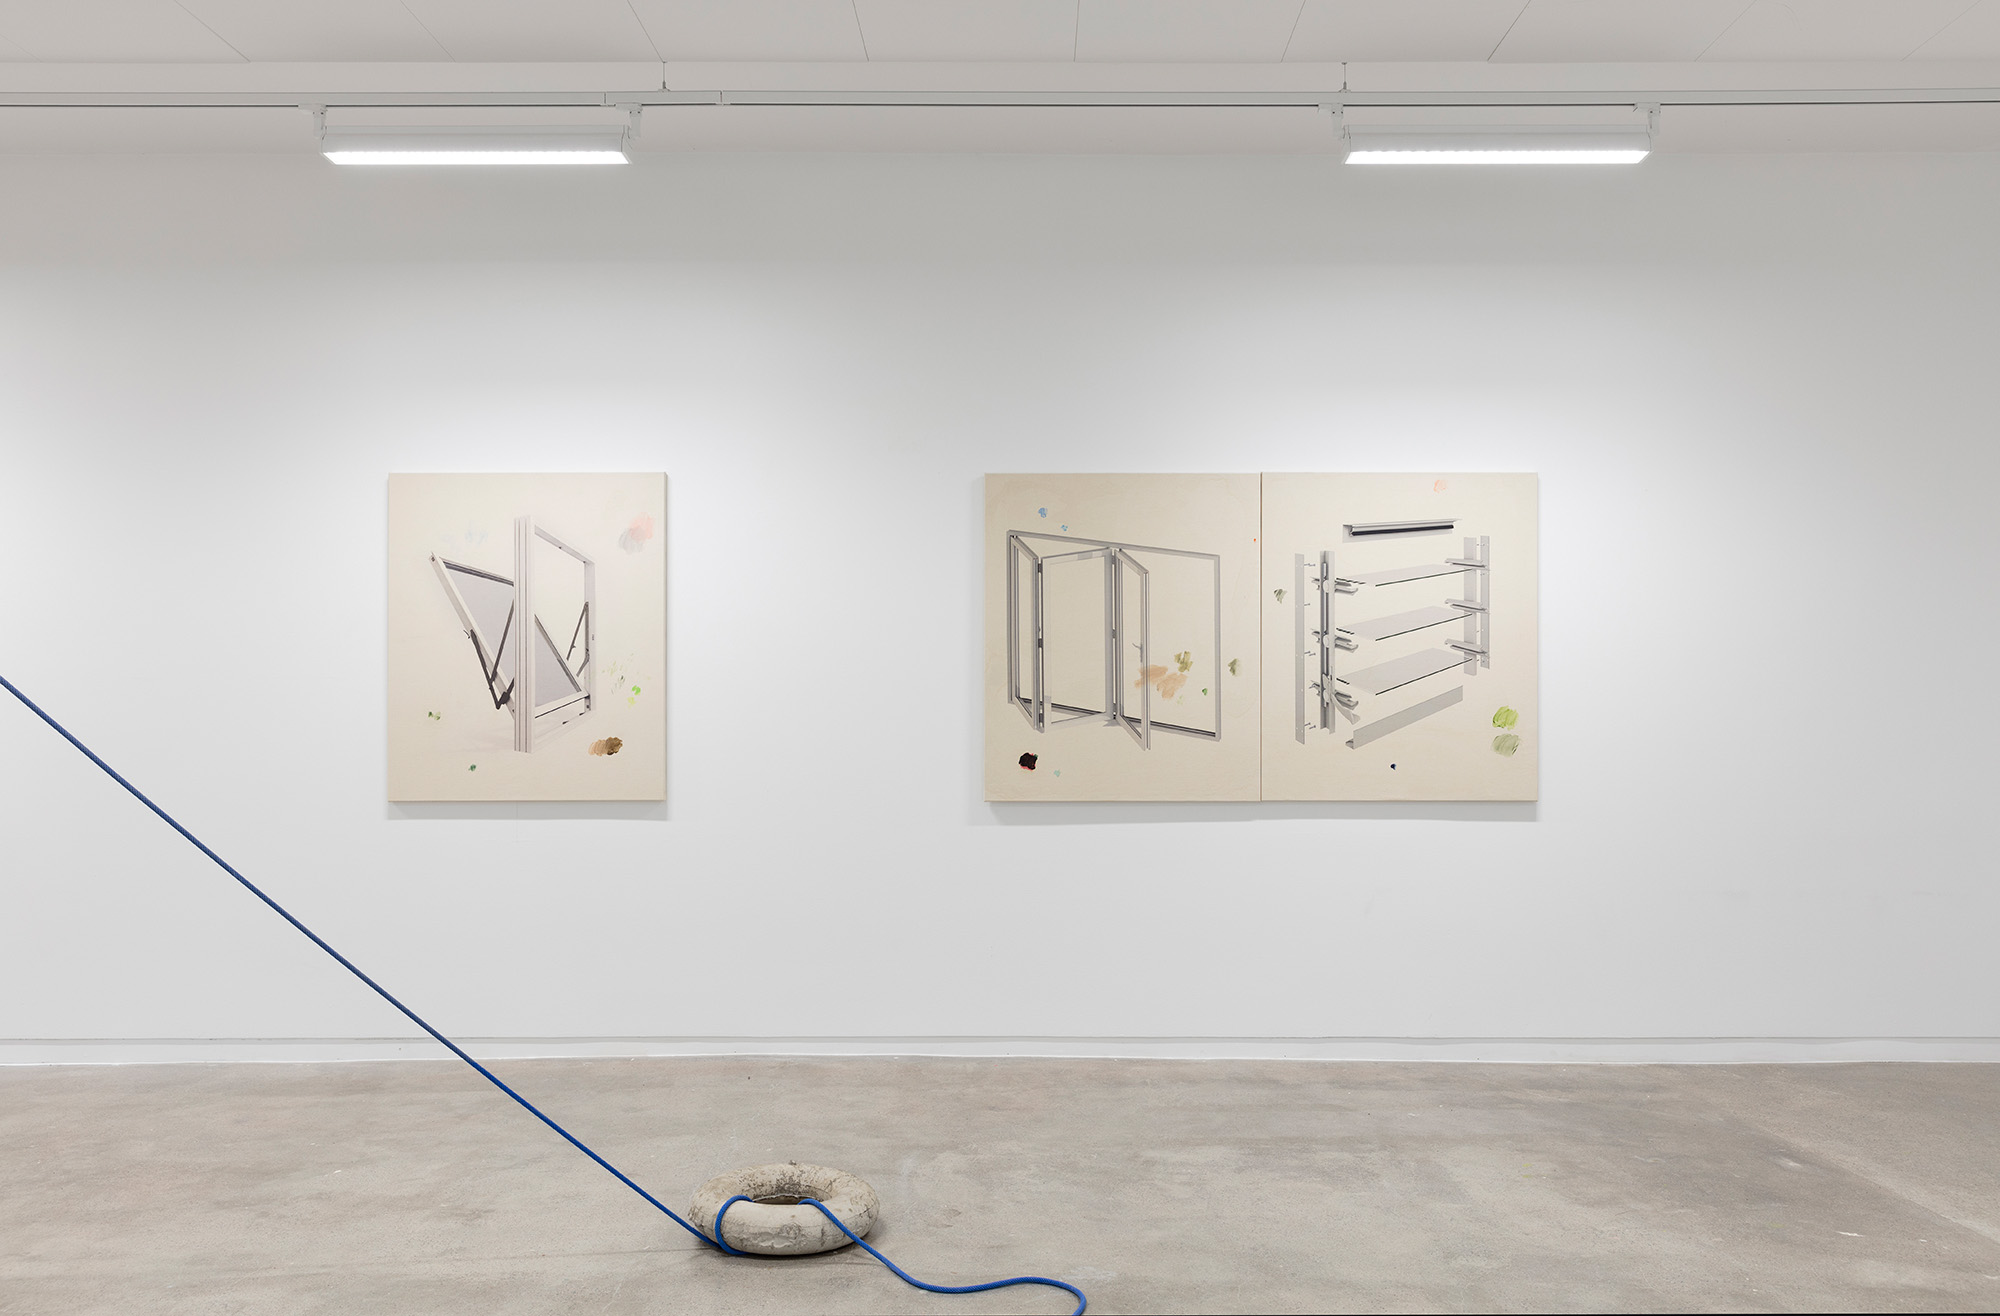 Linn Pedersen and Ole Martin Lund Bø at Golsa, curated by MELK 2018